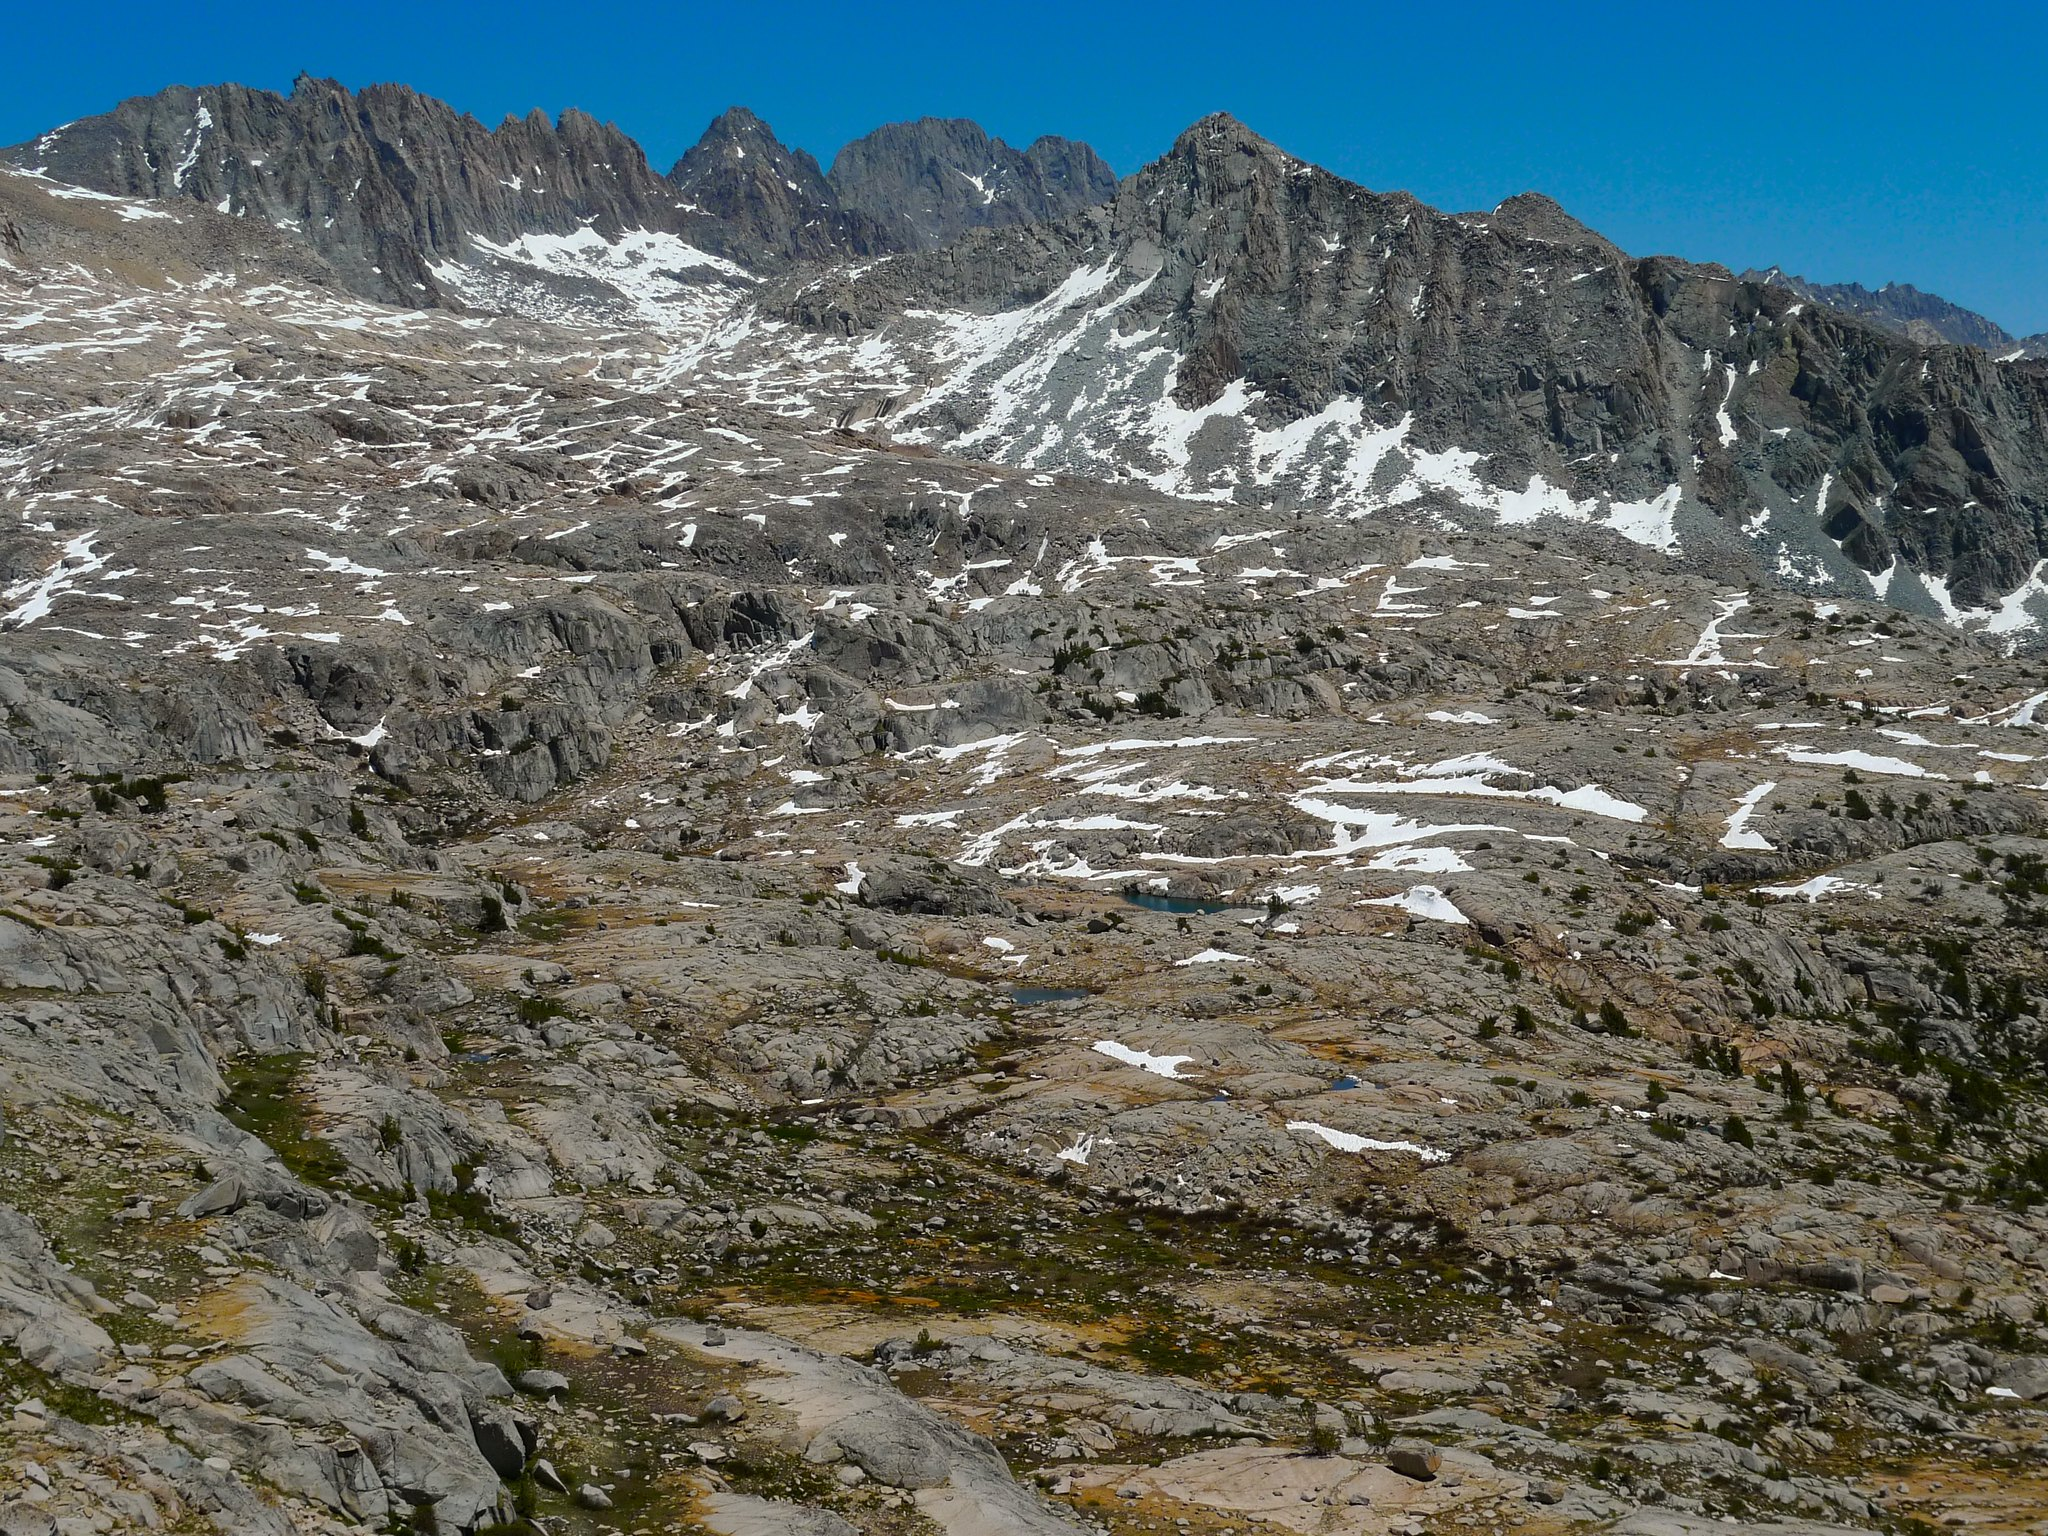 Barrett Lakes and Palisades from Knapsack Pass